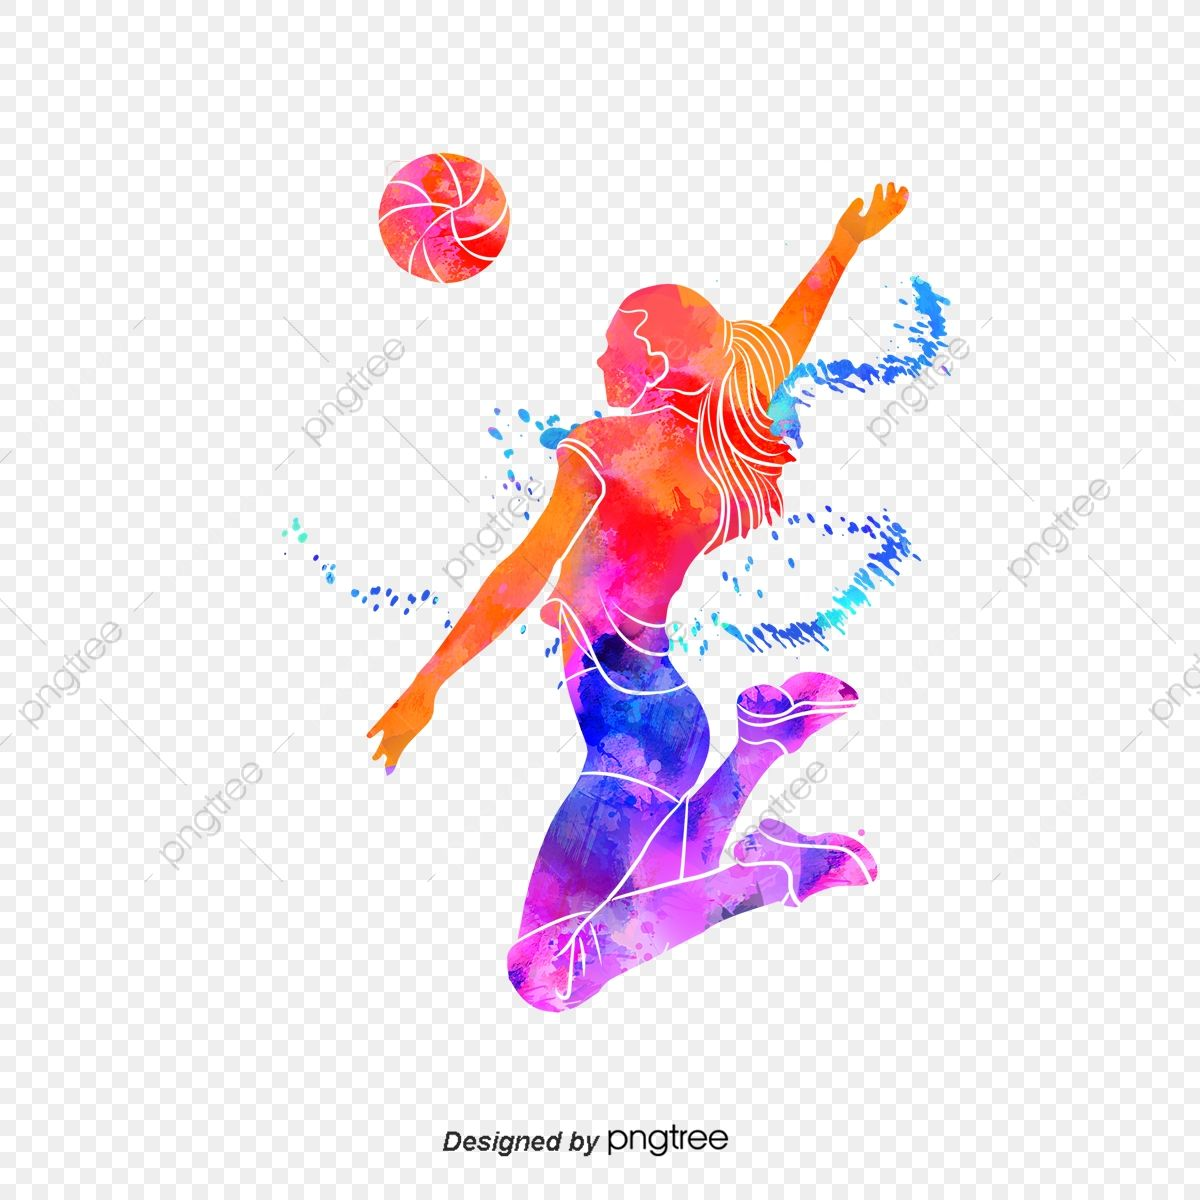 Download This Silhouettes Of Creative Volleyball Players Multicolored Sports Bodybuilding Png C In 2020 Sports Logo Design Volleyball Players Volleyball Backgrounds